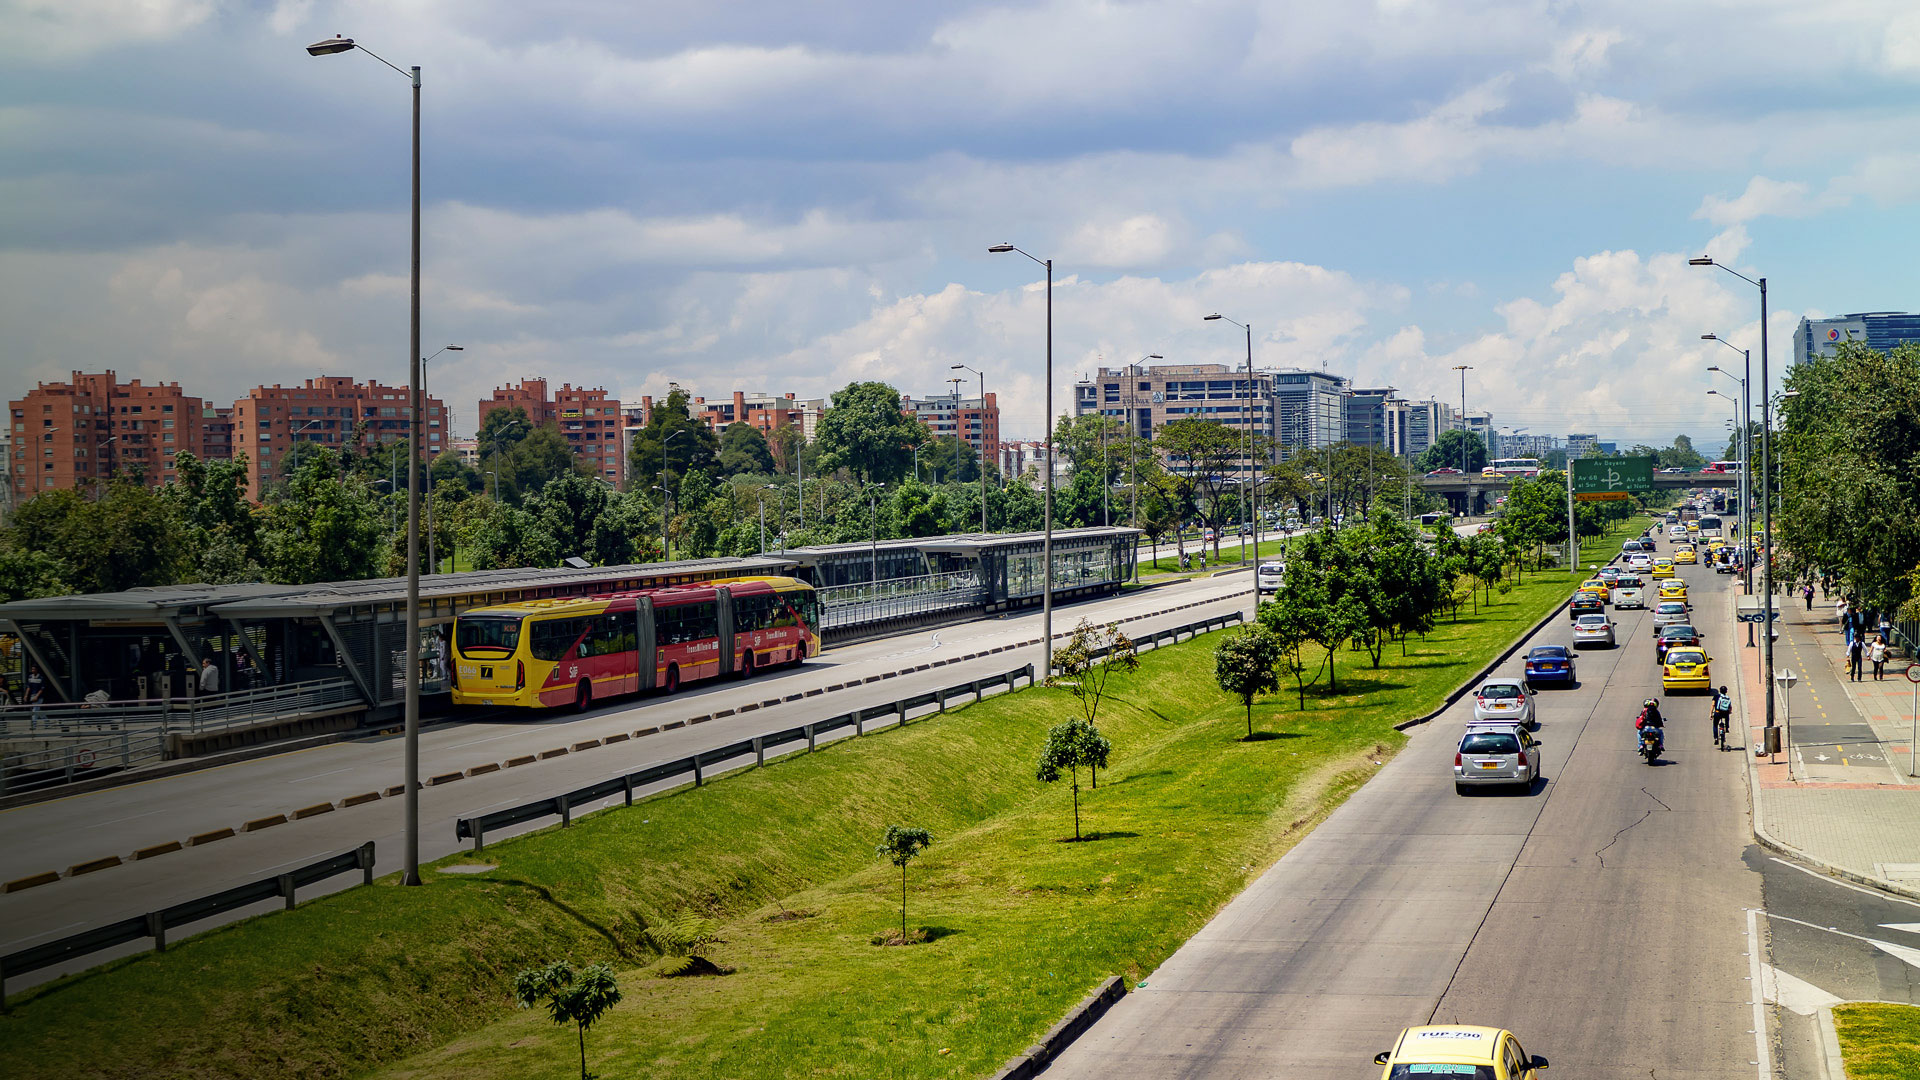 4G roads and advances in financial closures